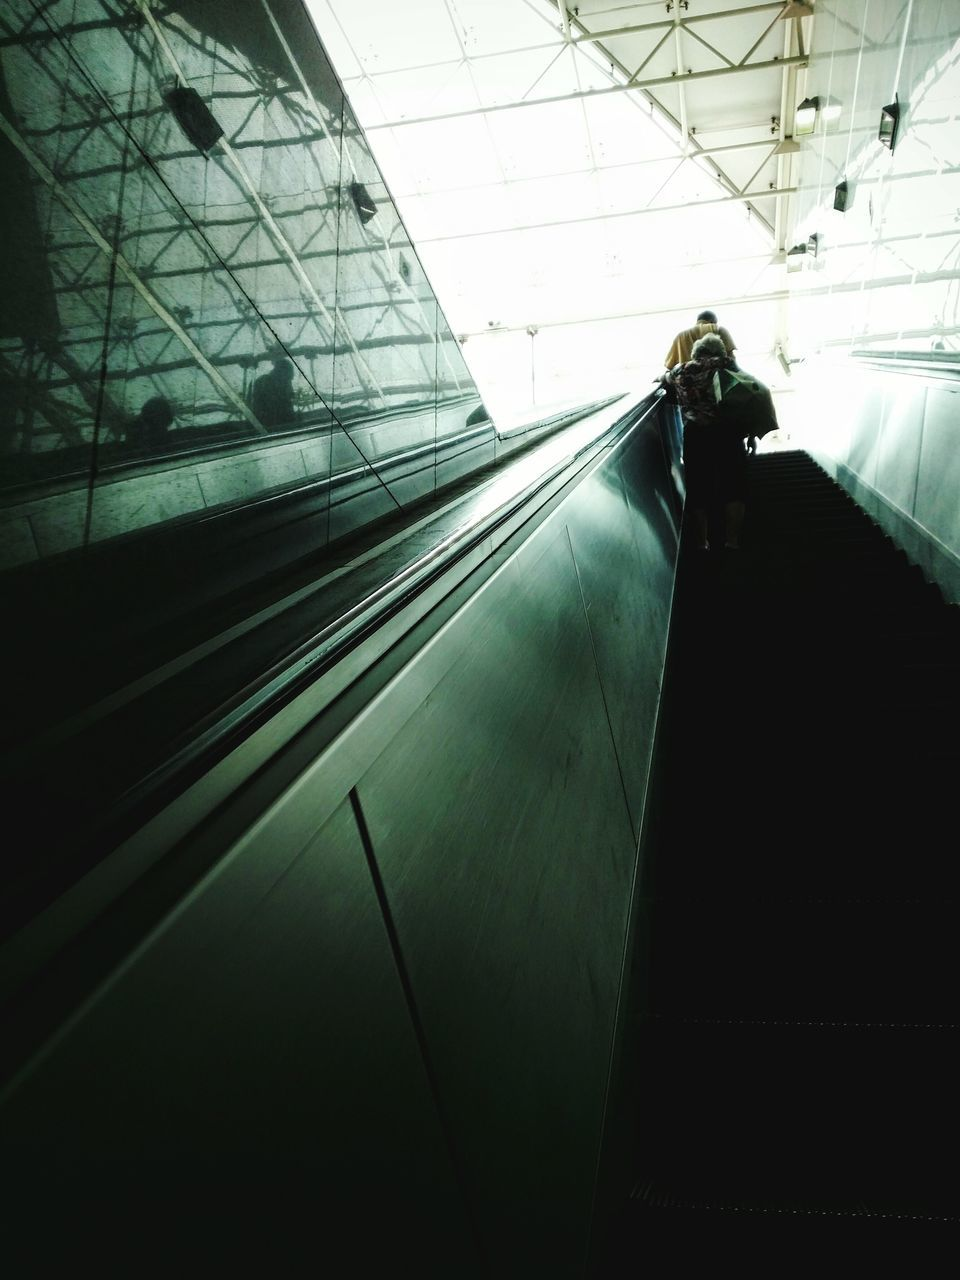 Low Angle View Of People On Escalator In Building